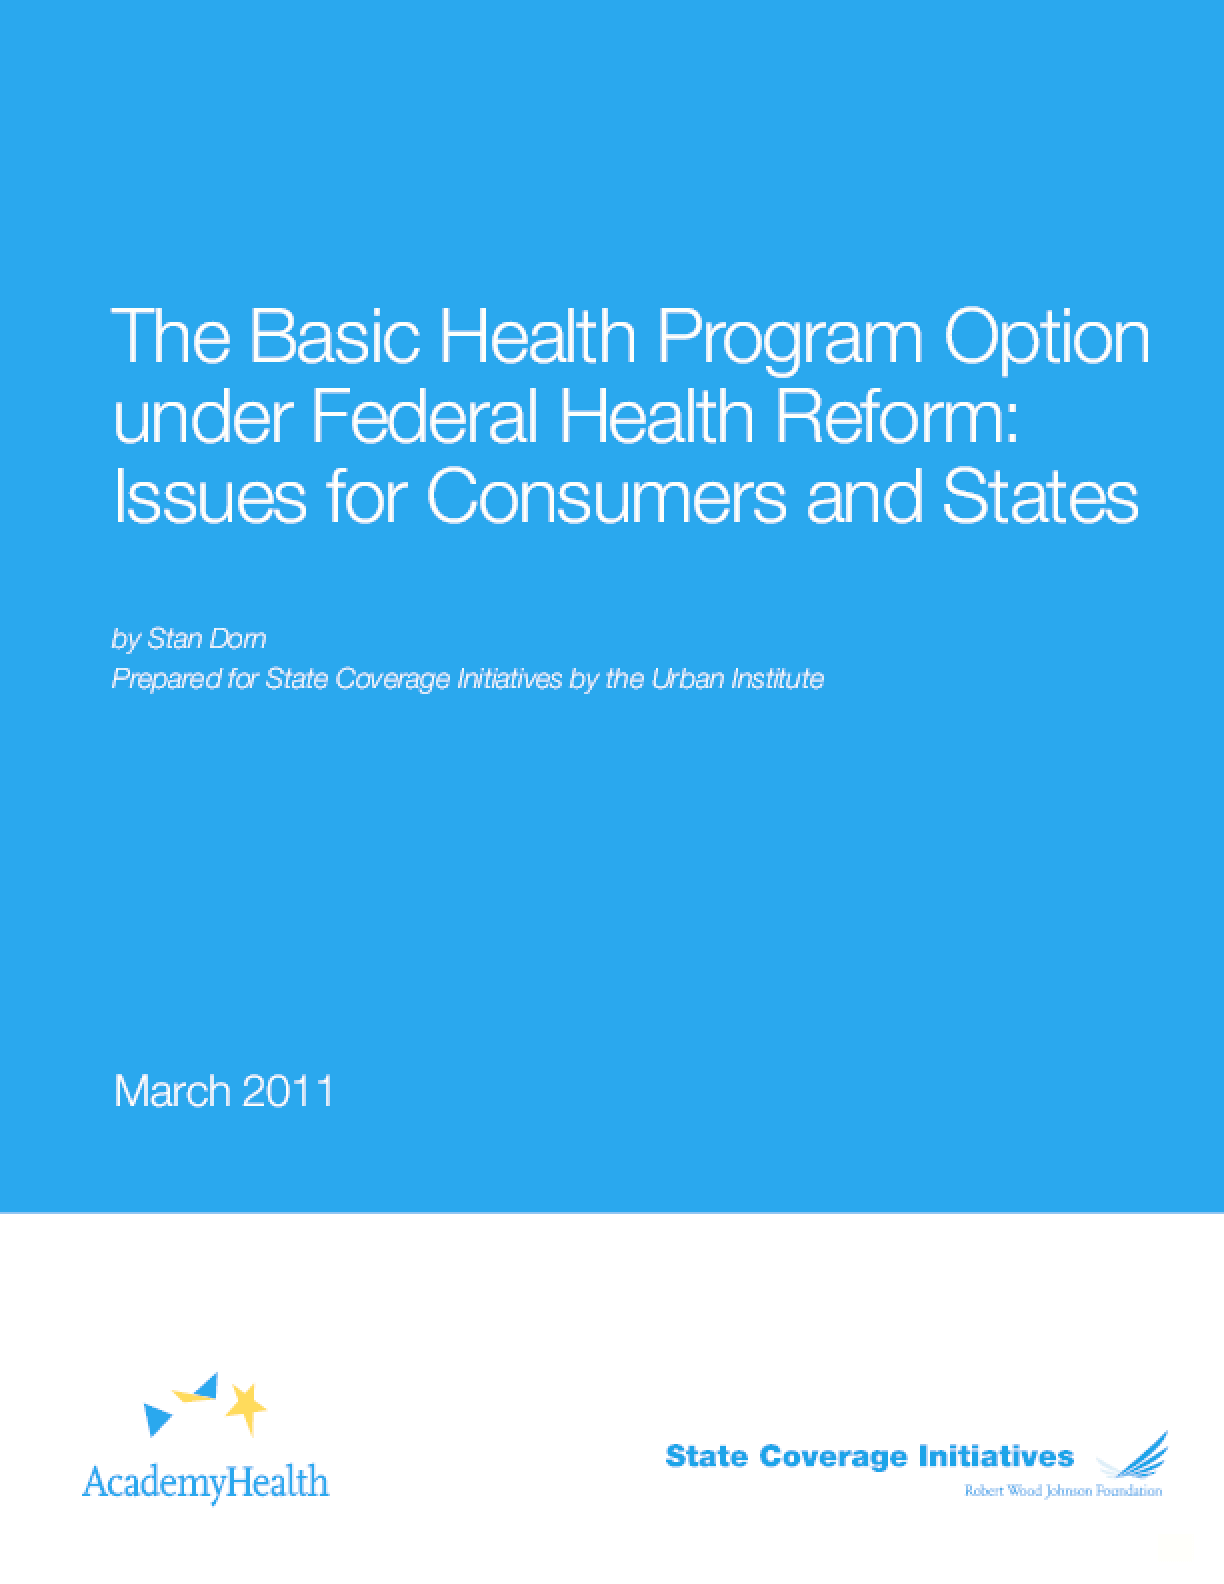 The Basic Health Program Option Under Federal Health Reform: Issues for Consumers and States